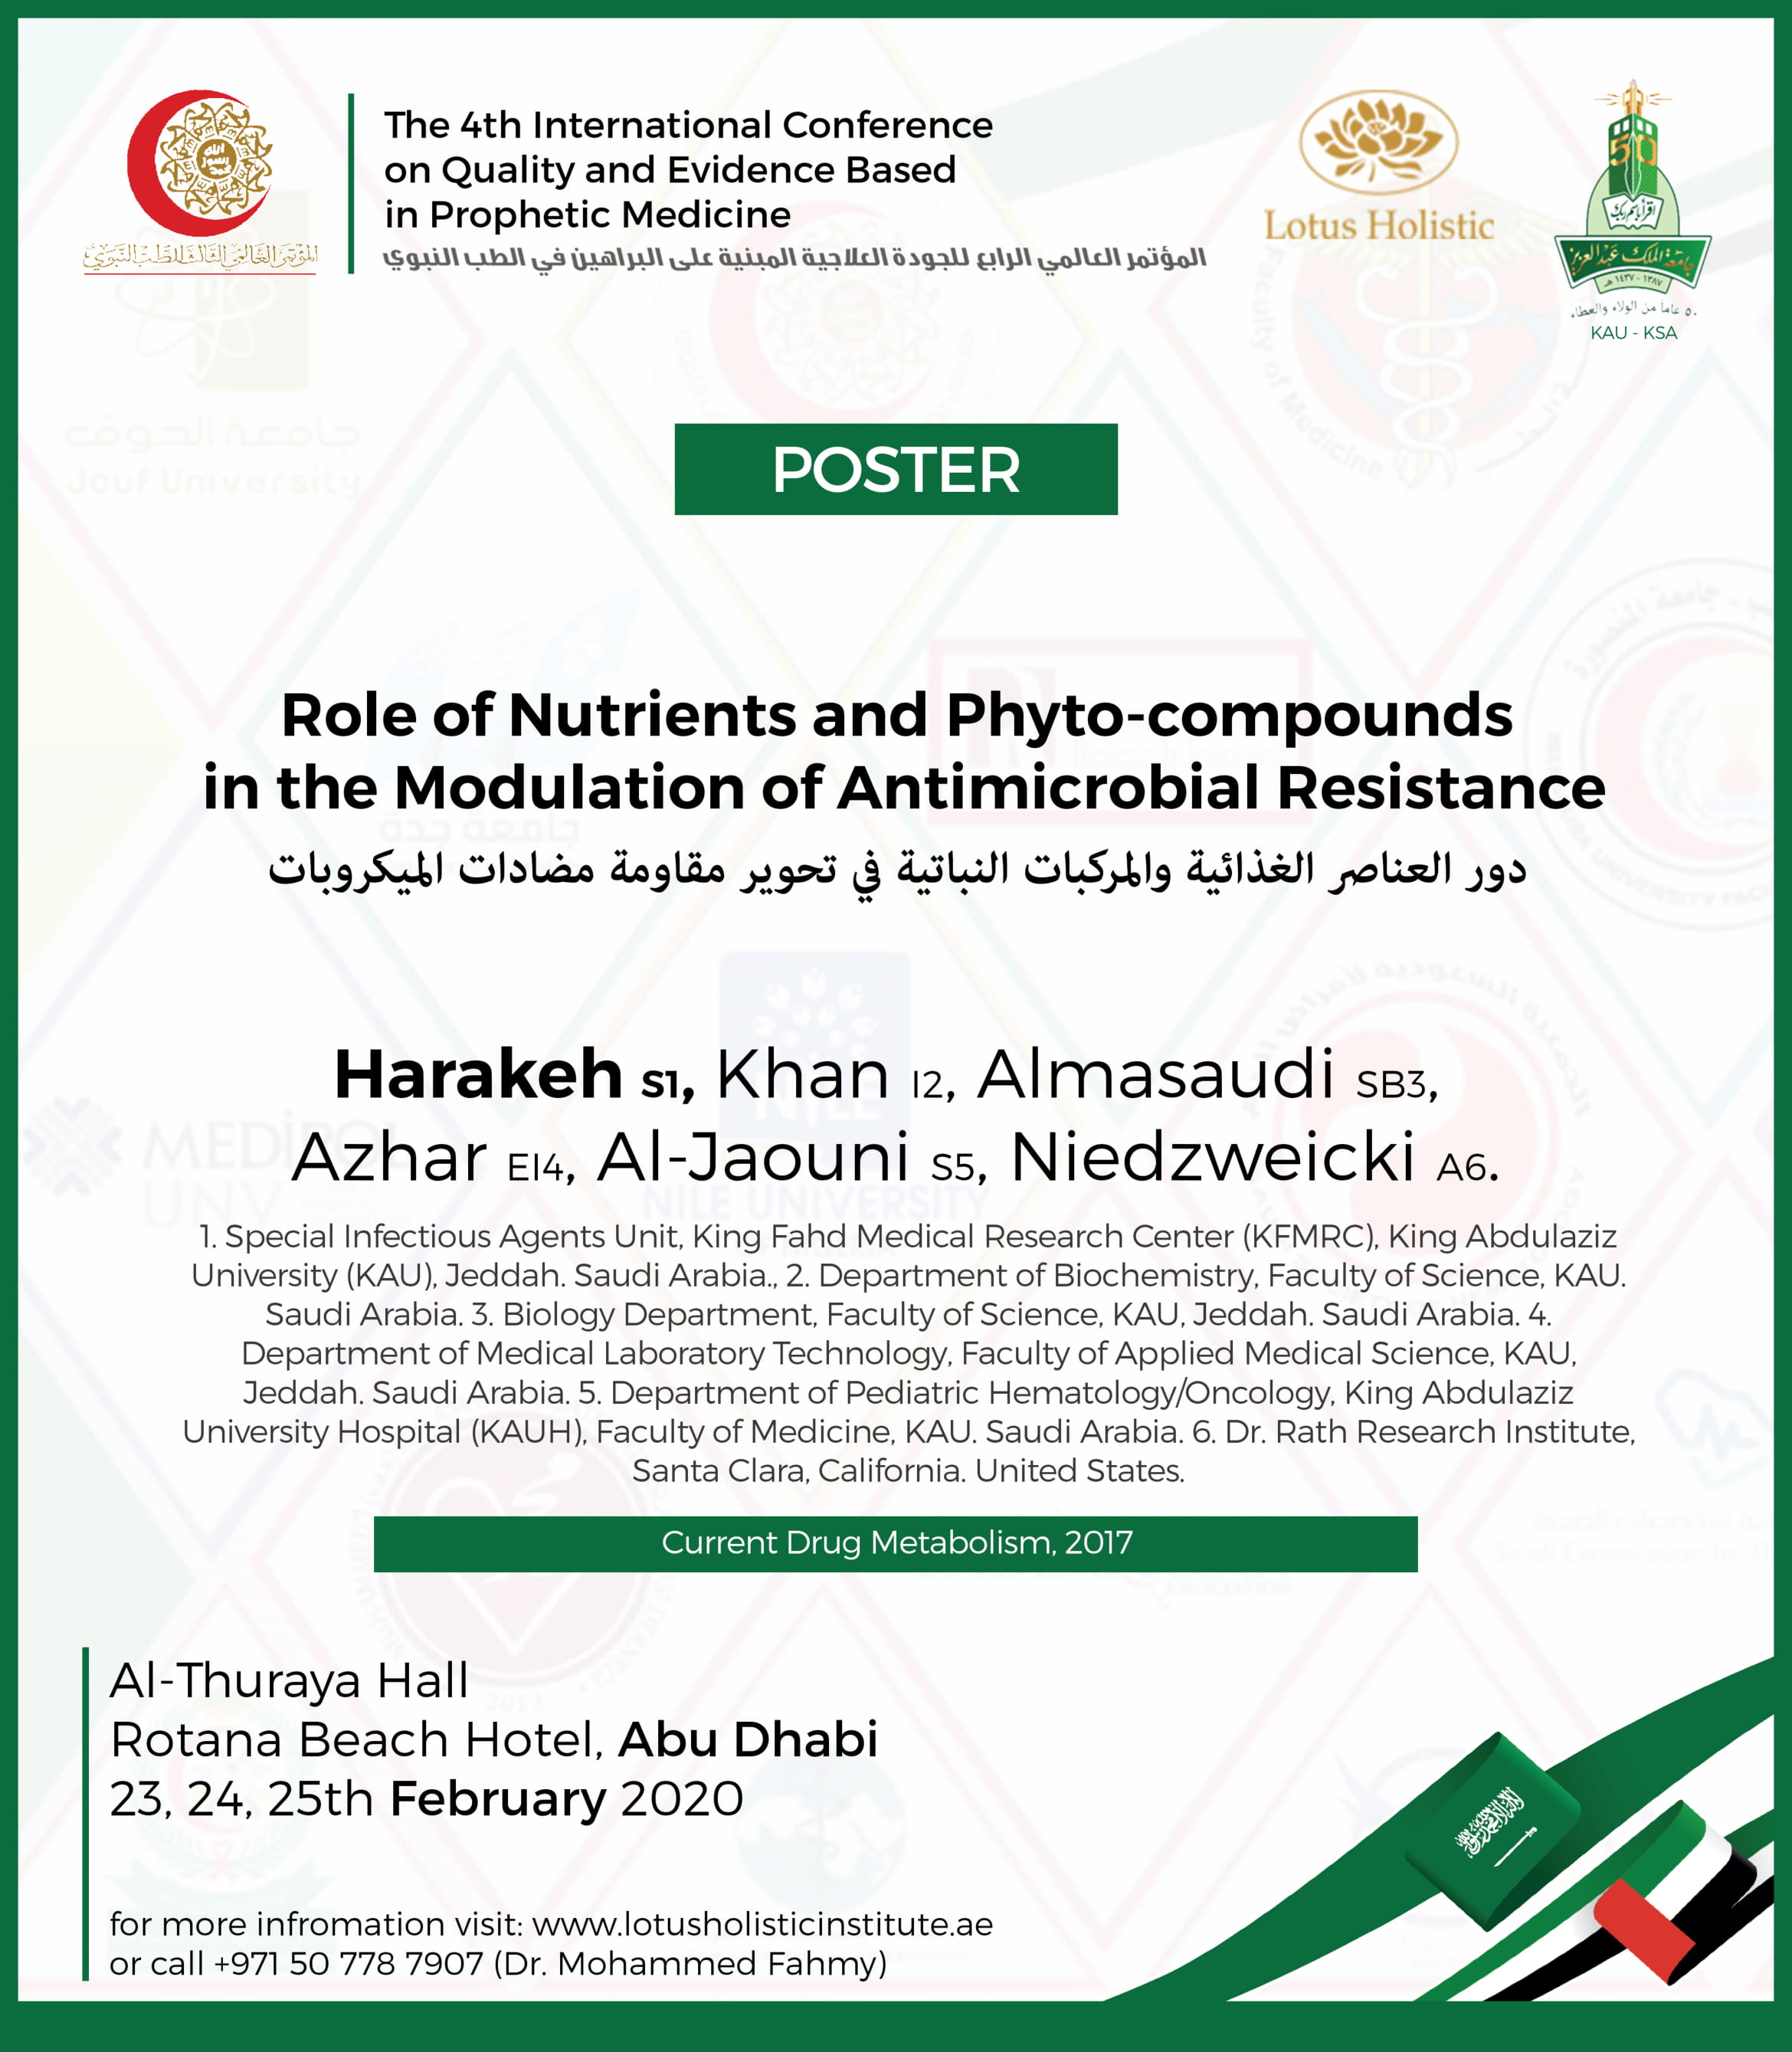 POSTER SESSION 04-1